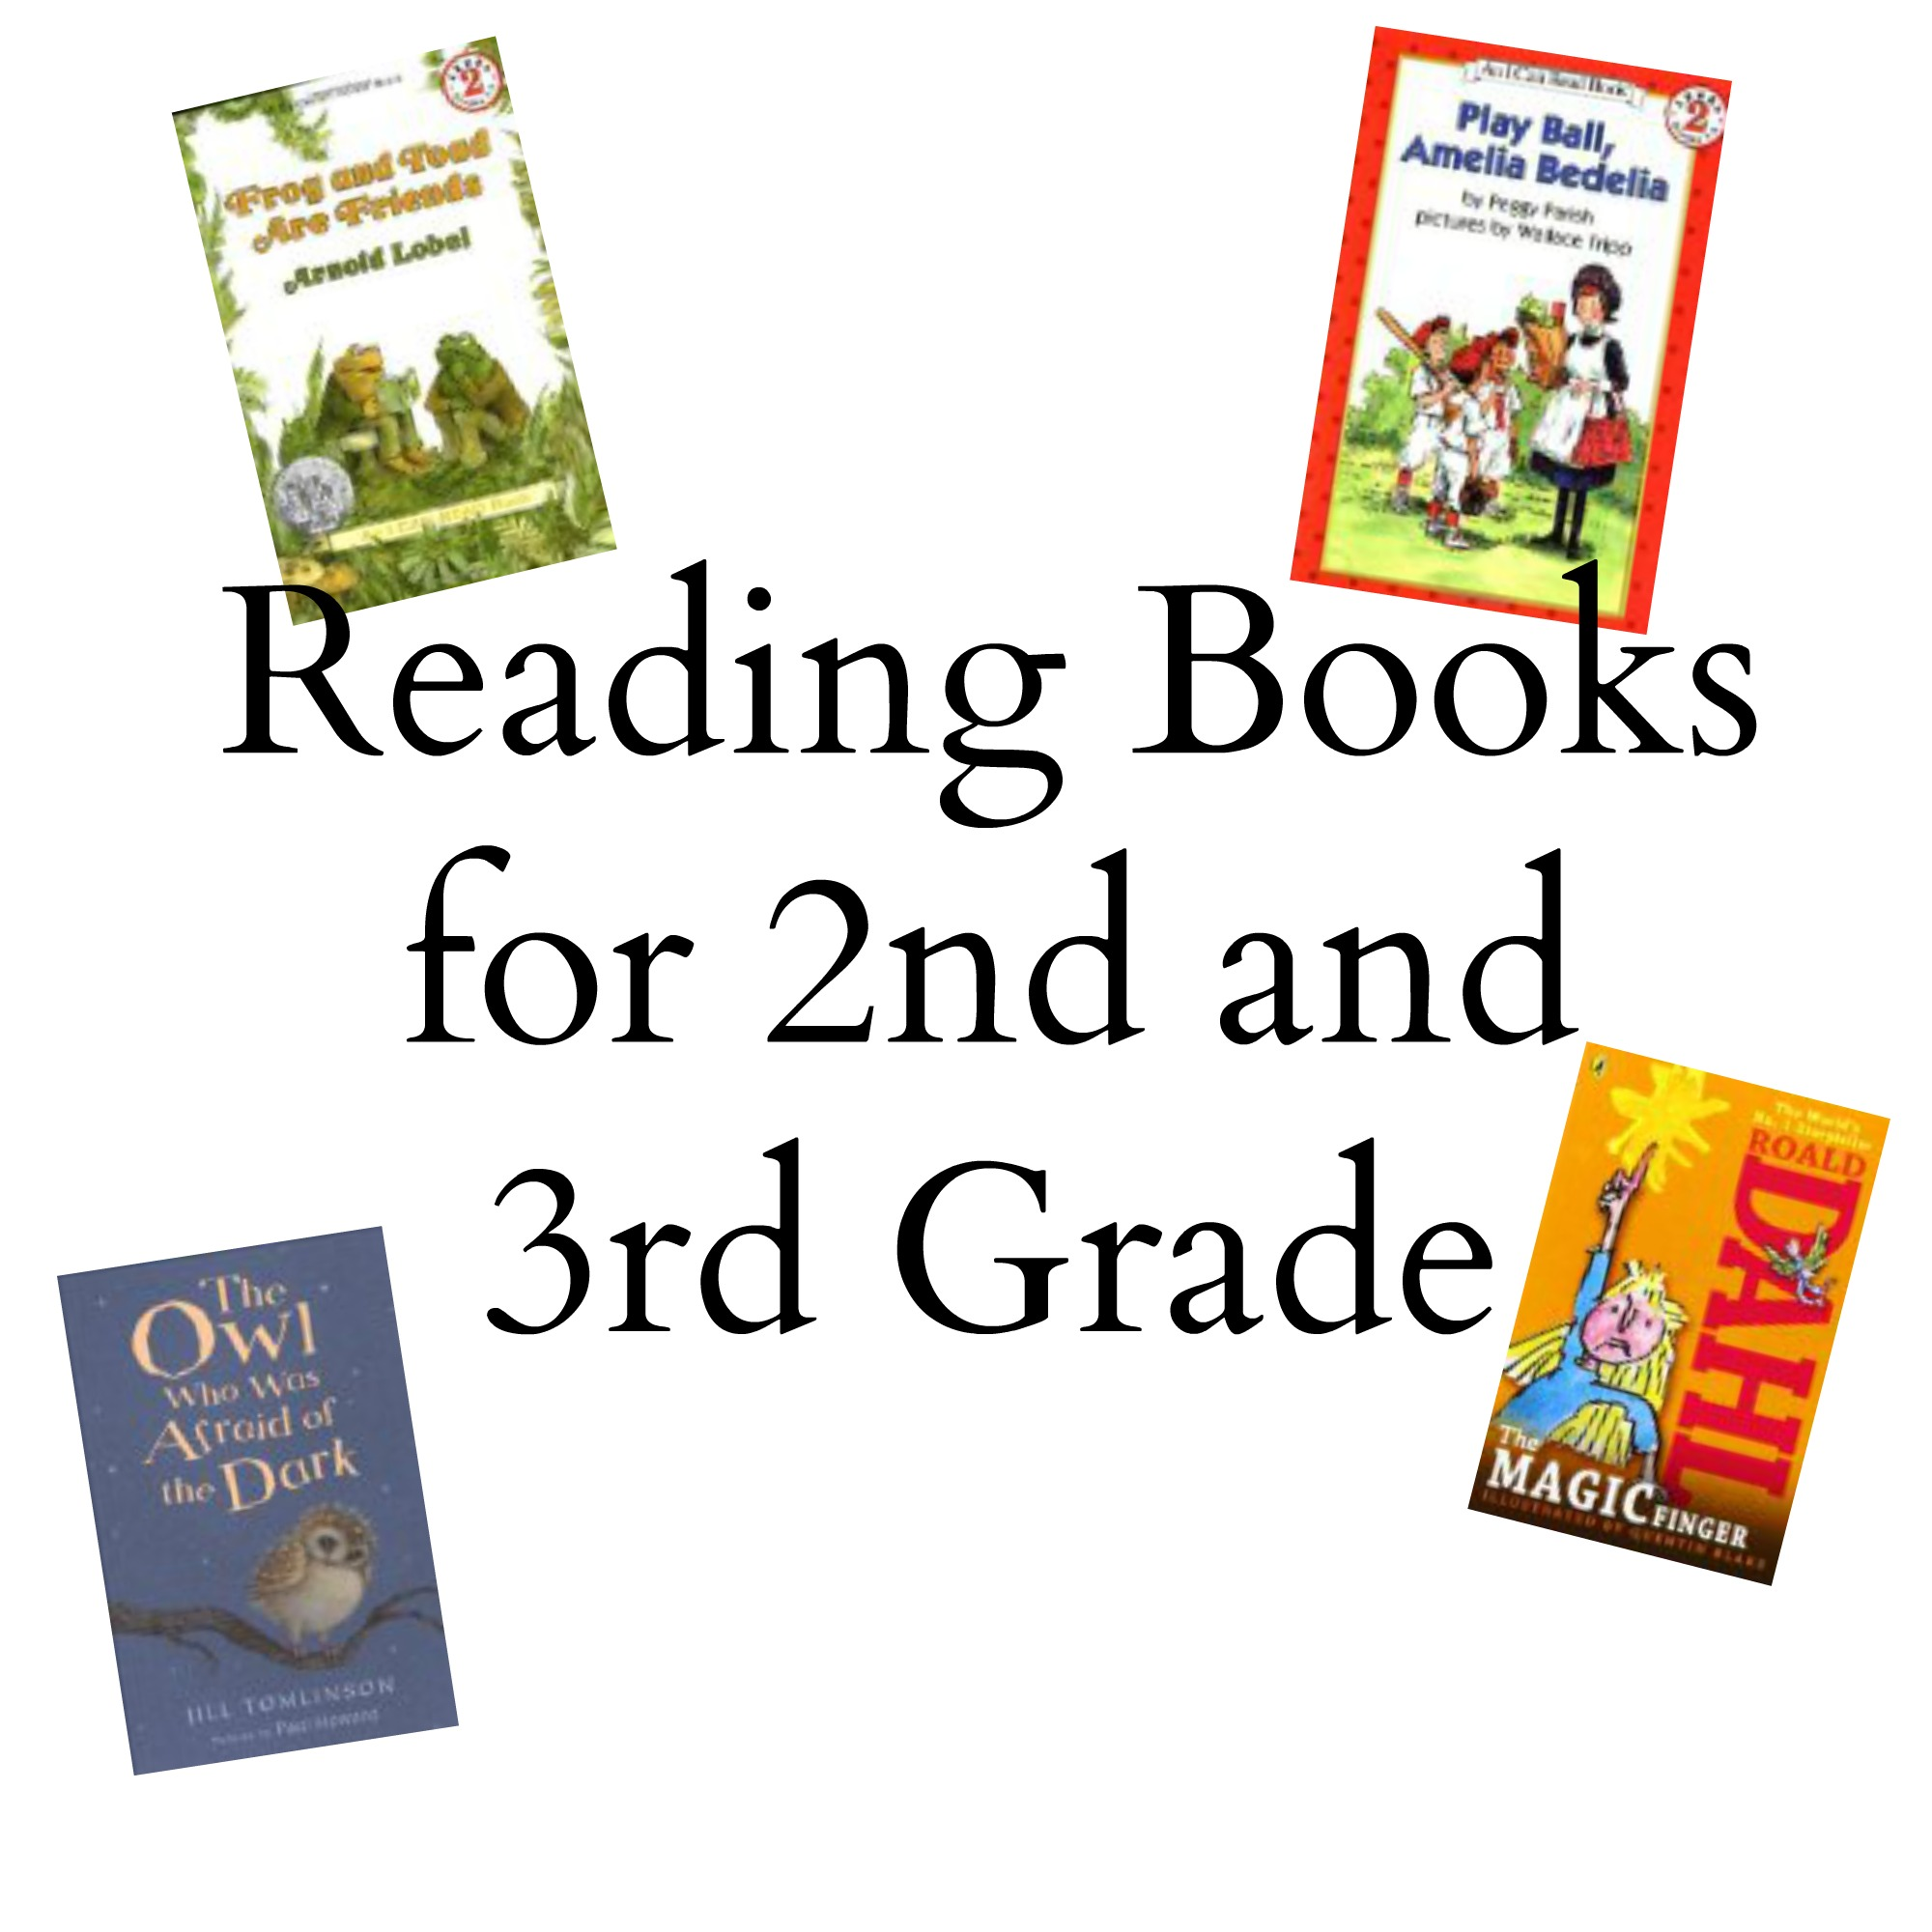 Worksheet Free Second Grade Reading Games 2nd grade level books irene childrens games online free age 4 1 reading